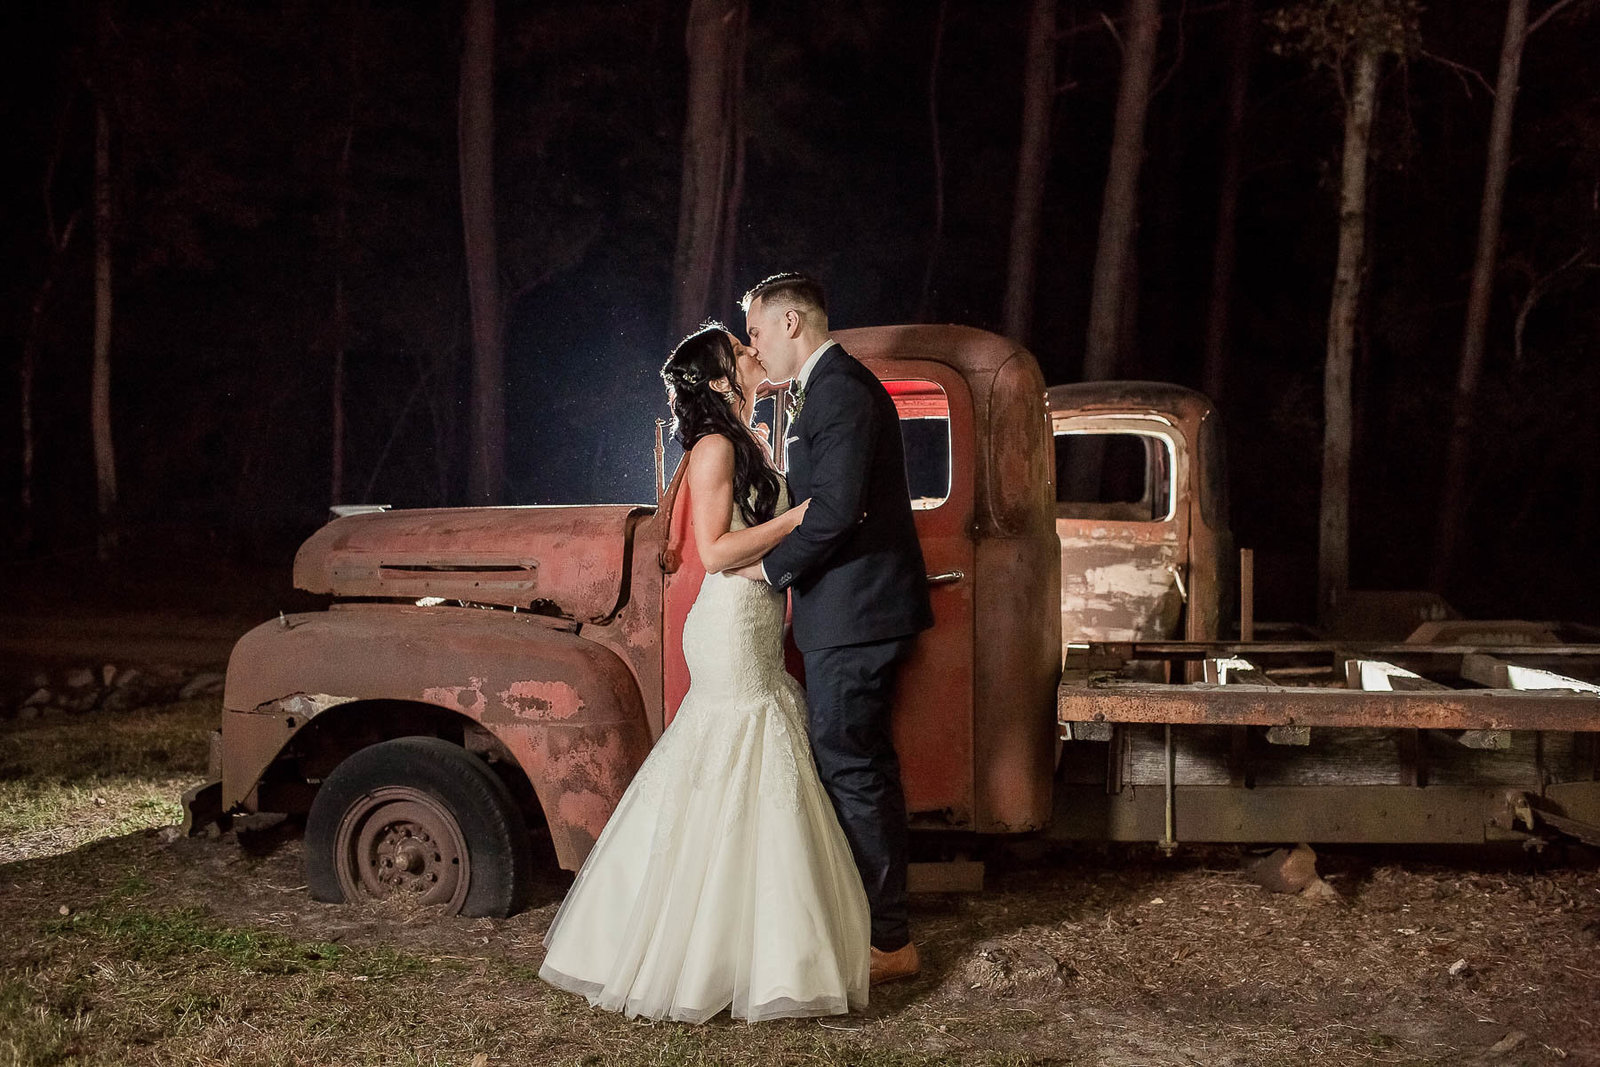 Bride and groom pose by red rustic truck at night, Boals Farm, Charleston, South Carolina